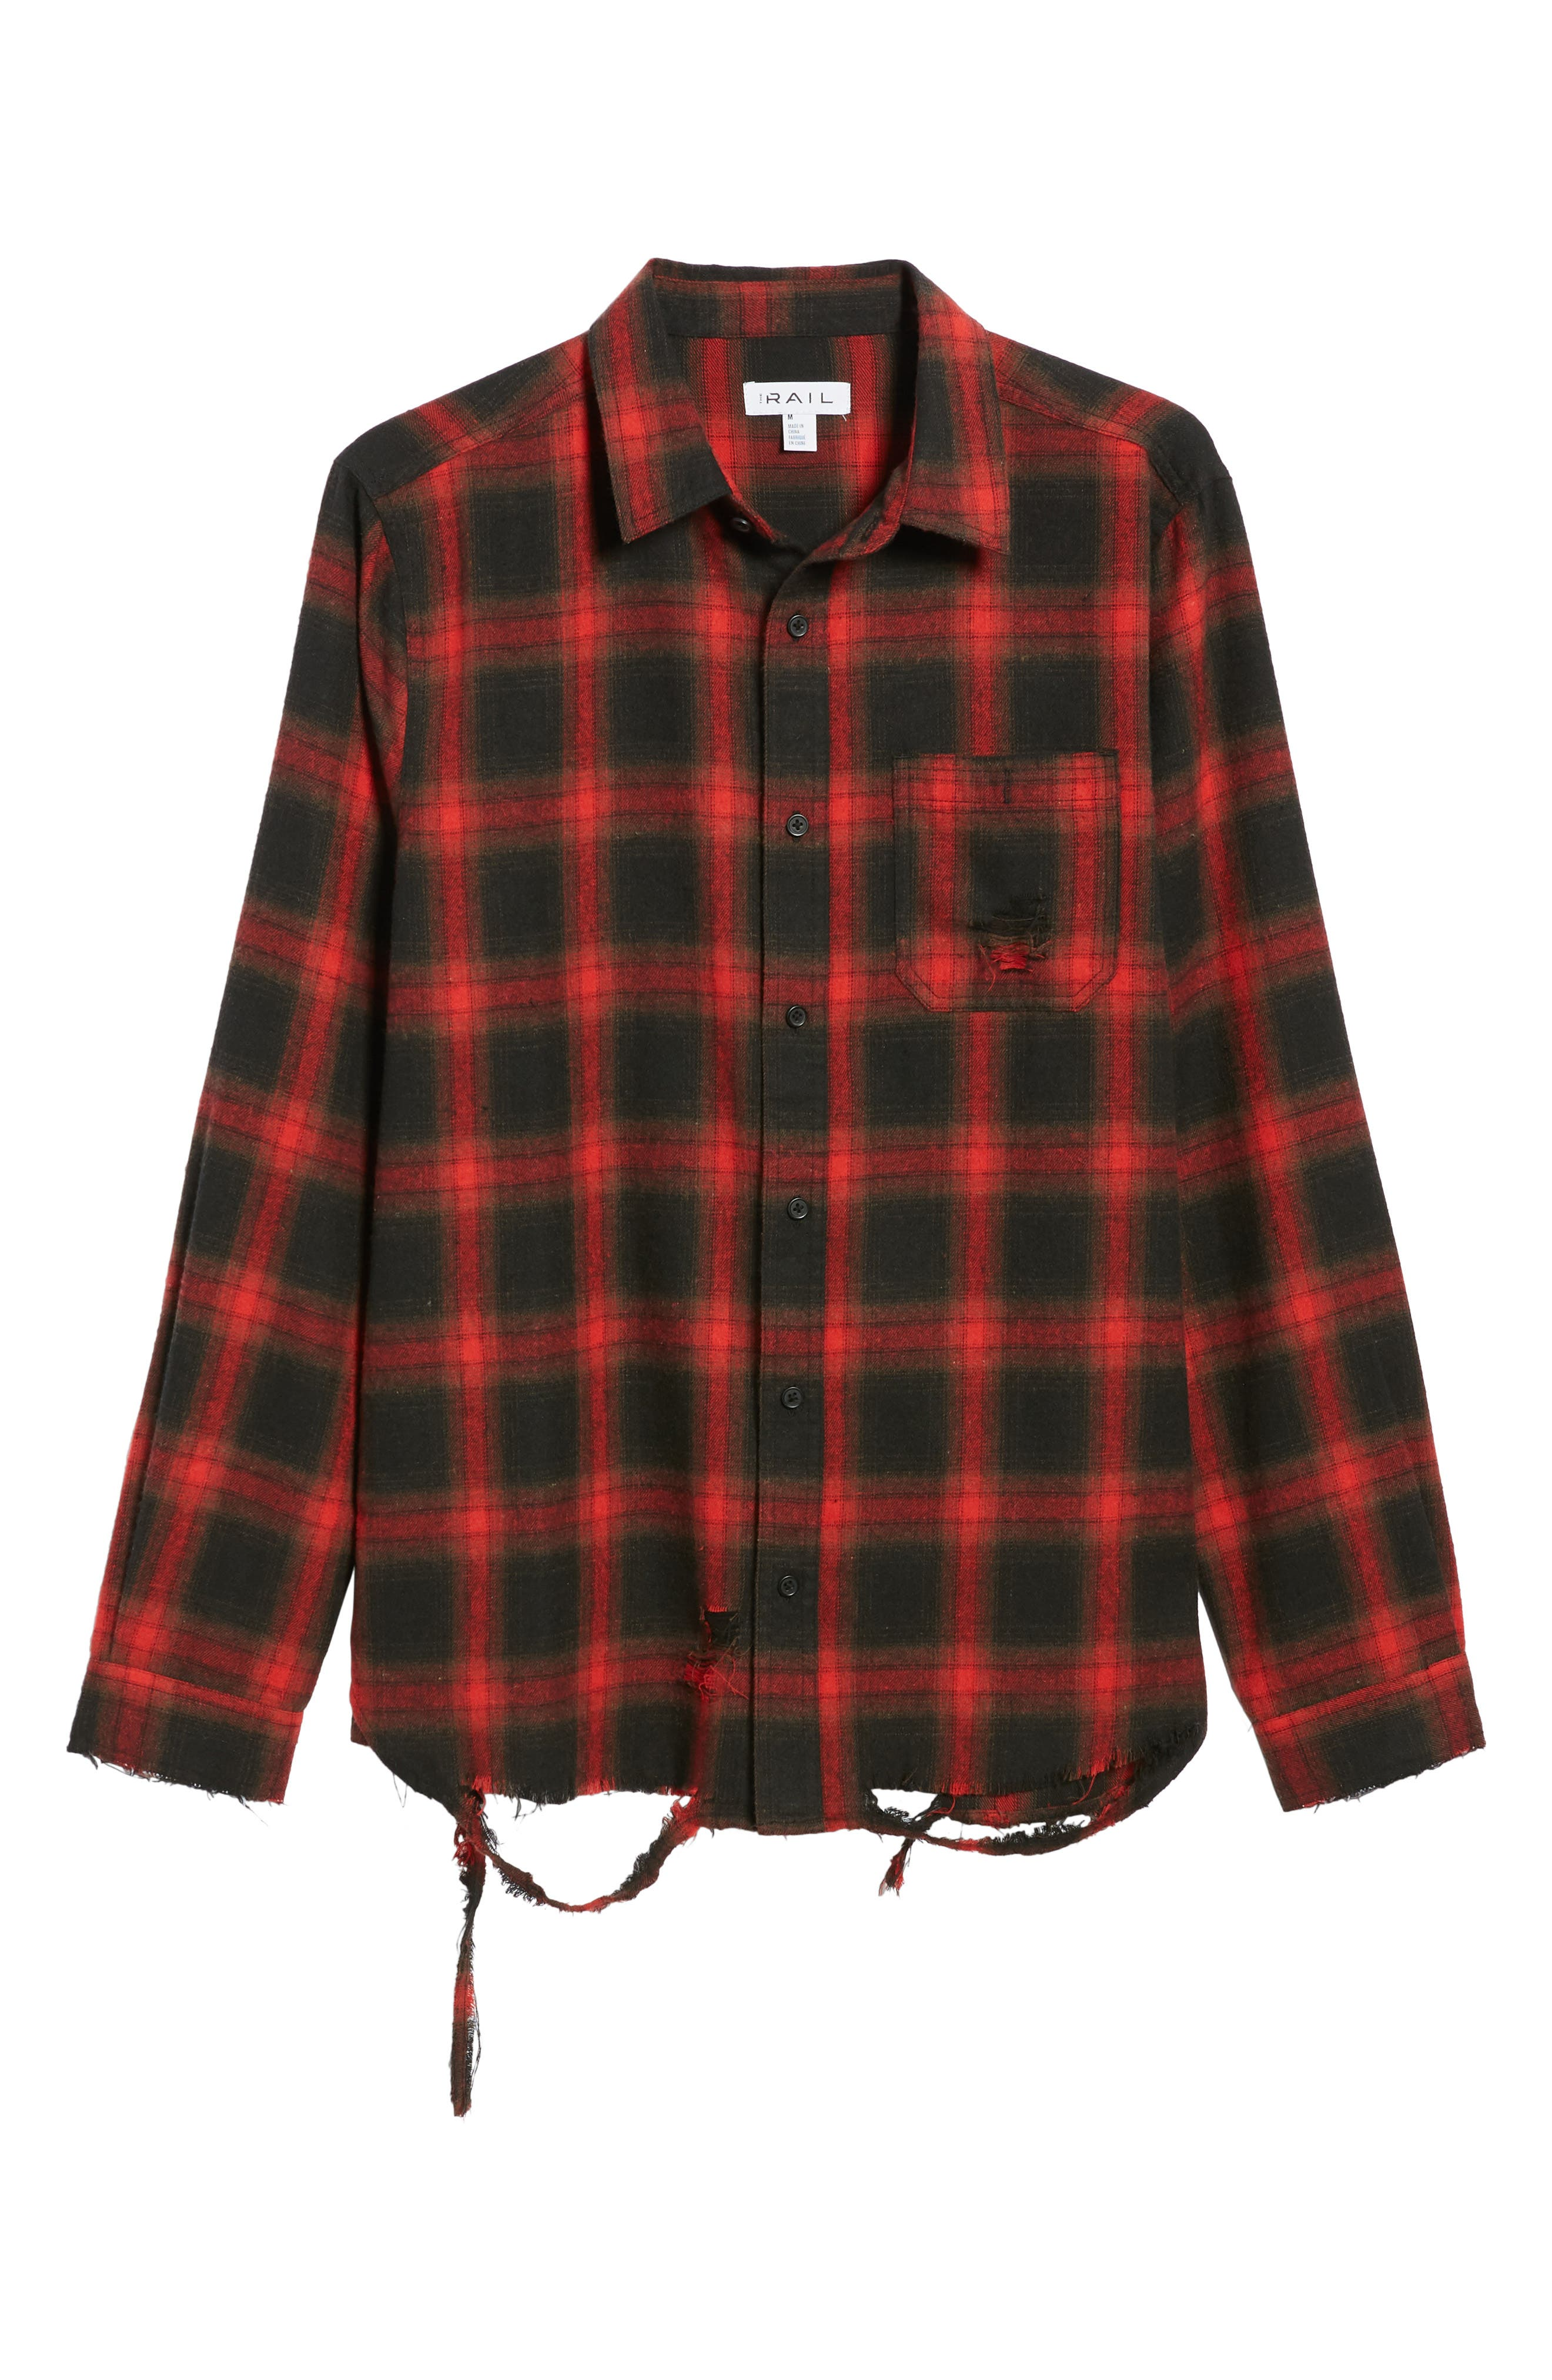 Shredded Plaid Flannel Shirt,                             Alternate thumbnail 6, color,                             Black Rock Red Ombre Check